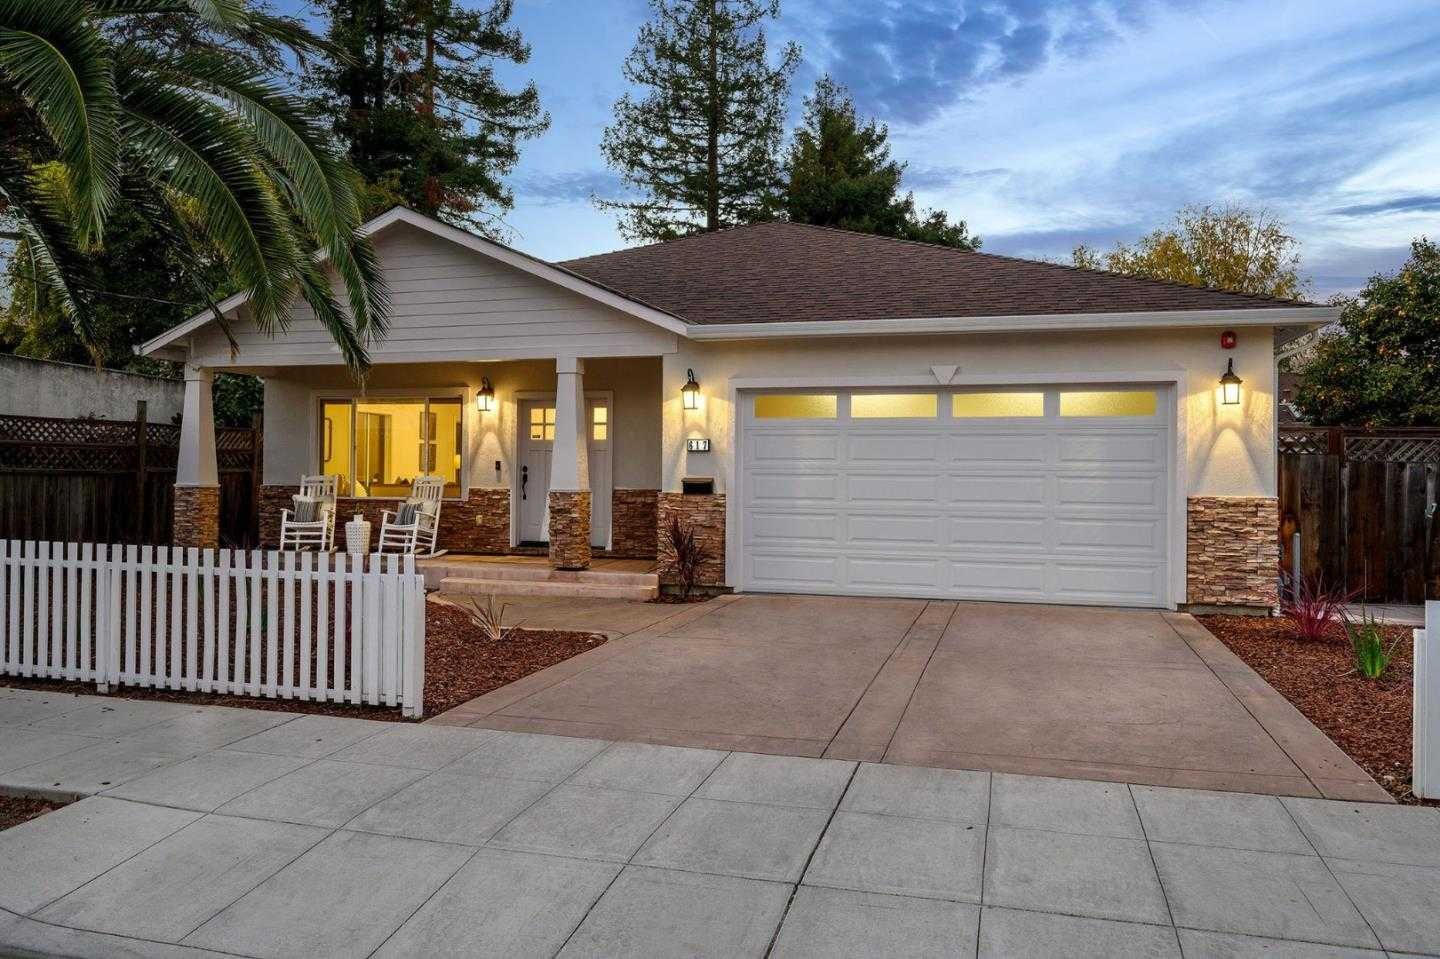 $1,689,000 - 4Br/3Ba -  for Sale in San Mateo